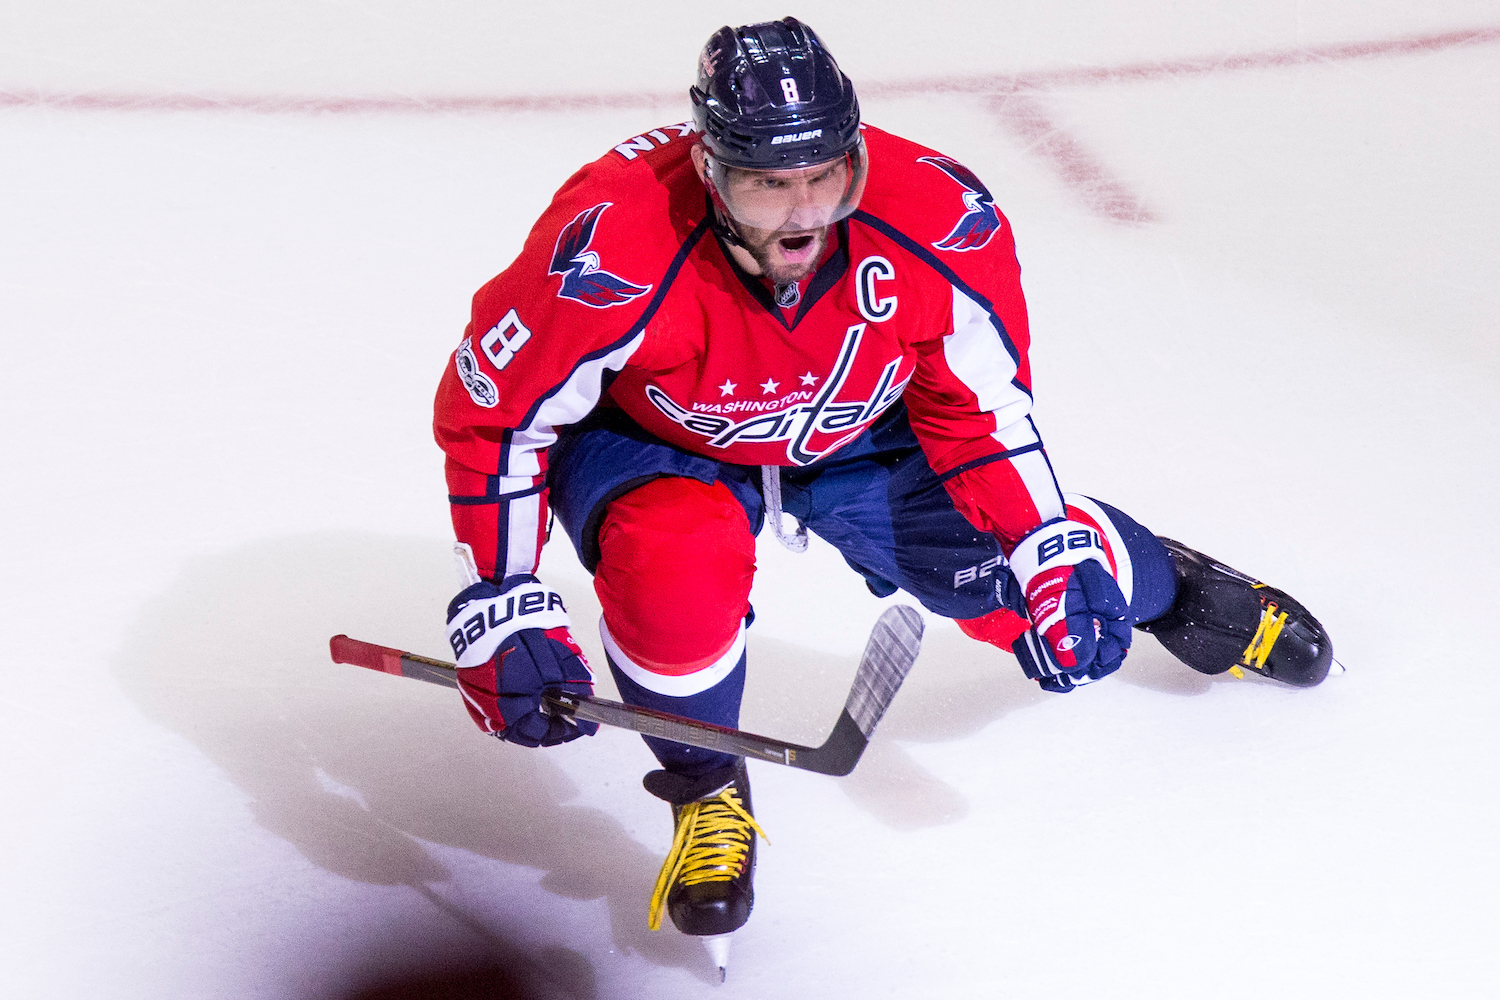 Capitals' Ovechkin ties Lemieux for 10th on National Hockey League all-time goals list